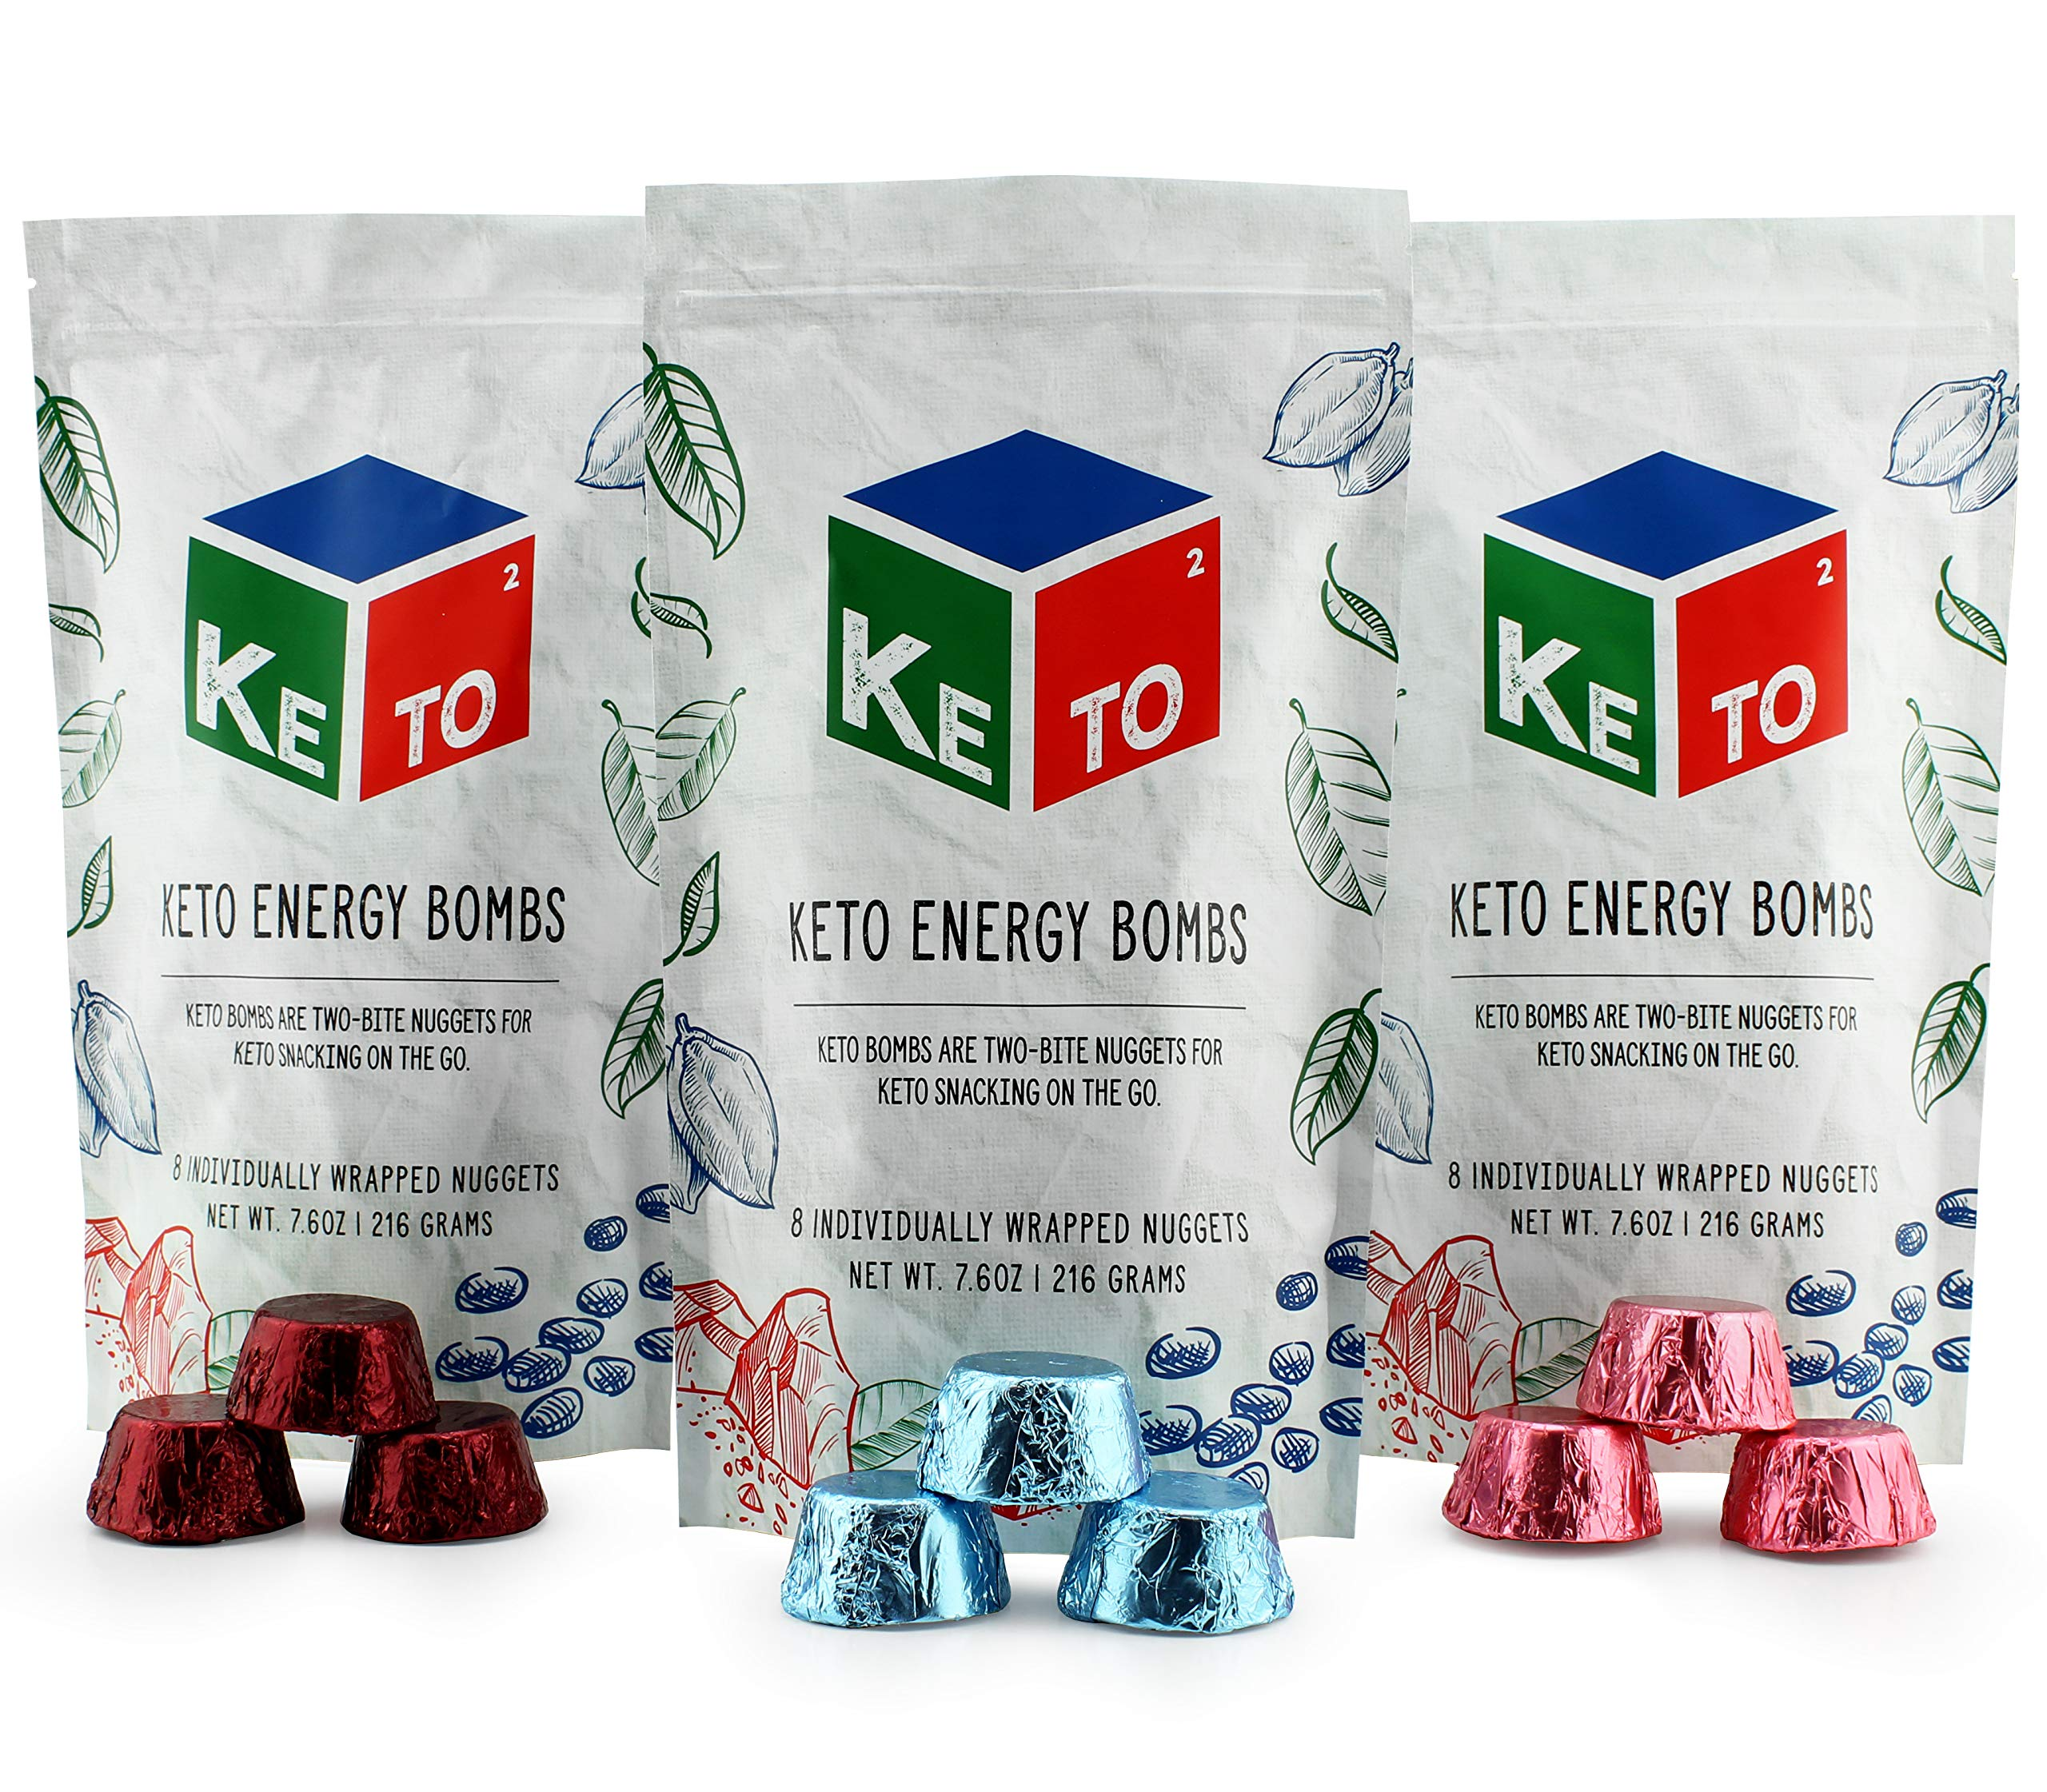 Keto Squared Snack Fat Bombs (24-Count, 3 Flavors); Keto2 Energy Nuggets for On the Go; Super Variety Pack with Chocolate Dream, Berry Cheesecake, and Macadamia Crème by Keto2